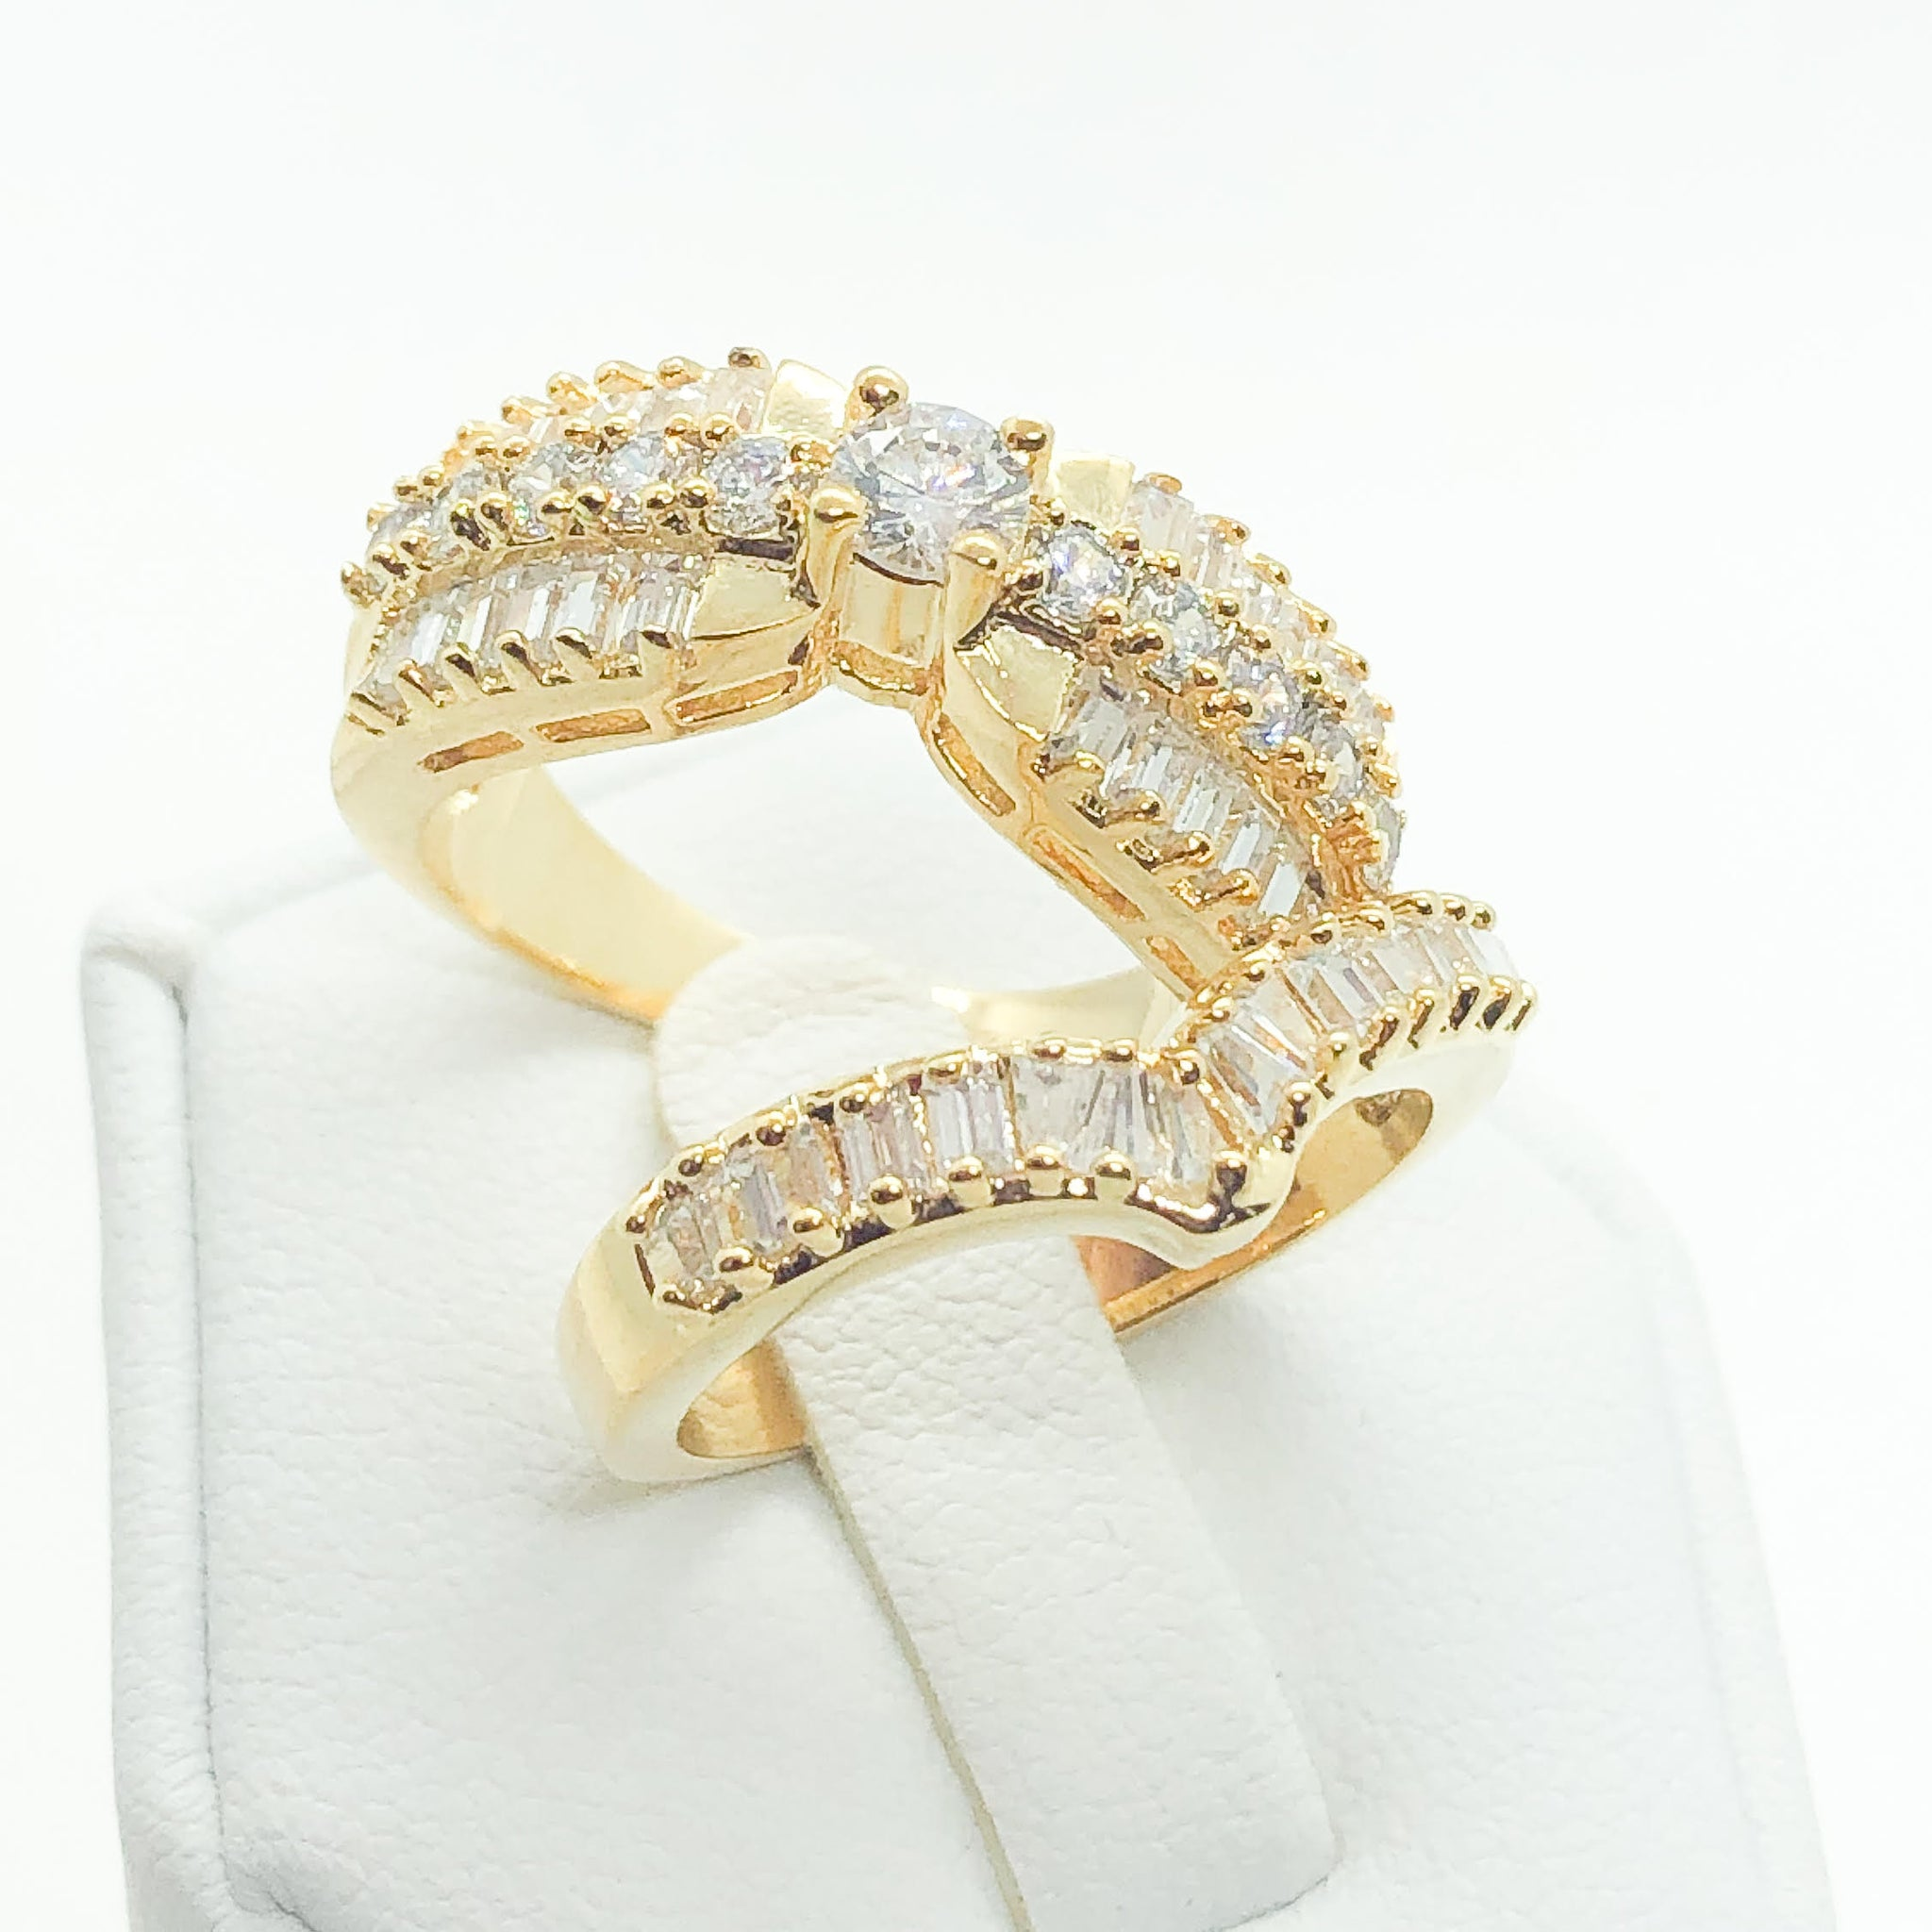 ID:R5590 Women 18K Yellow Gold GF Fashion-Forward Jewelry Glamorous Engagement Wedding Bridal Band Ring 2pcs/Set